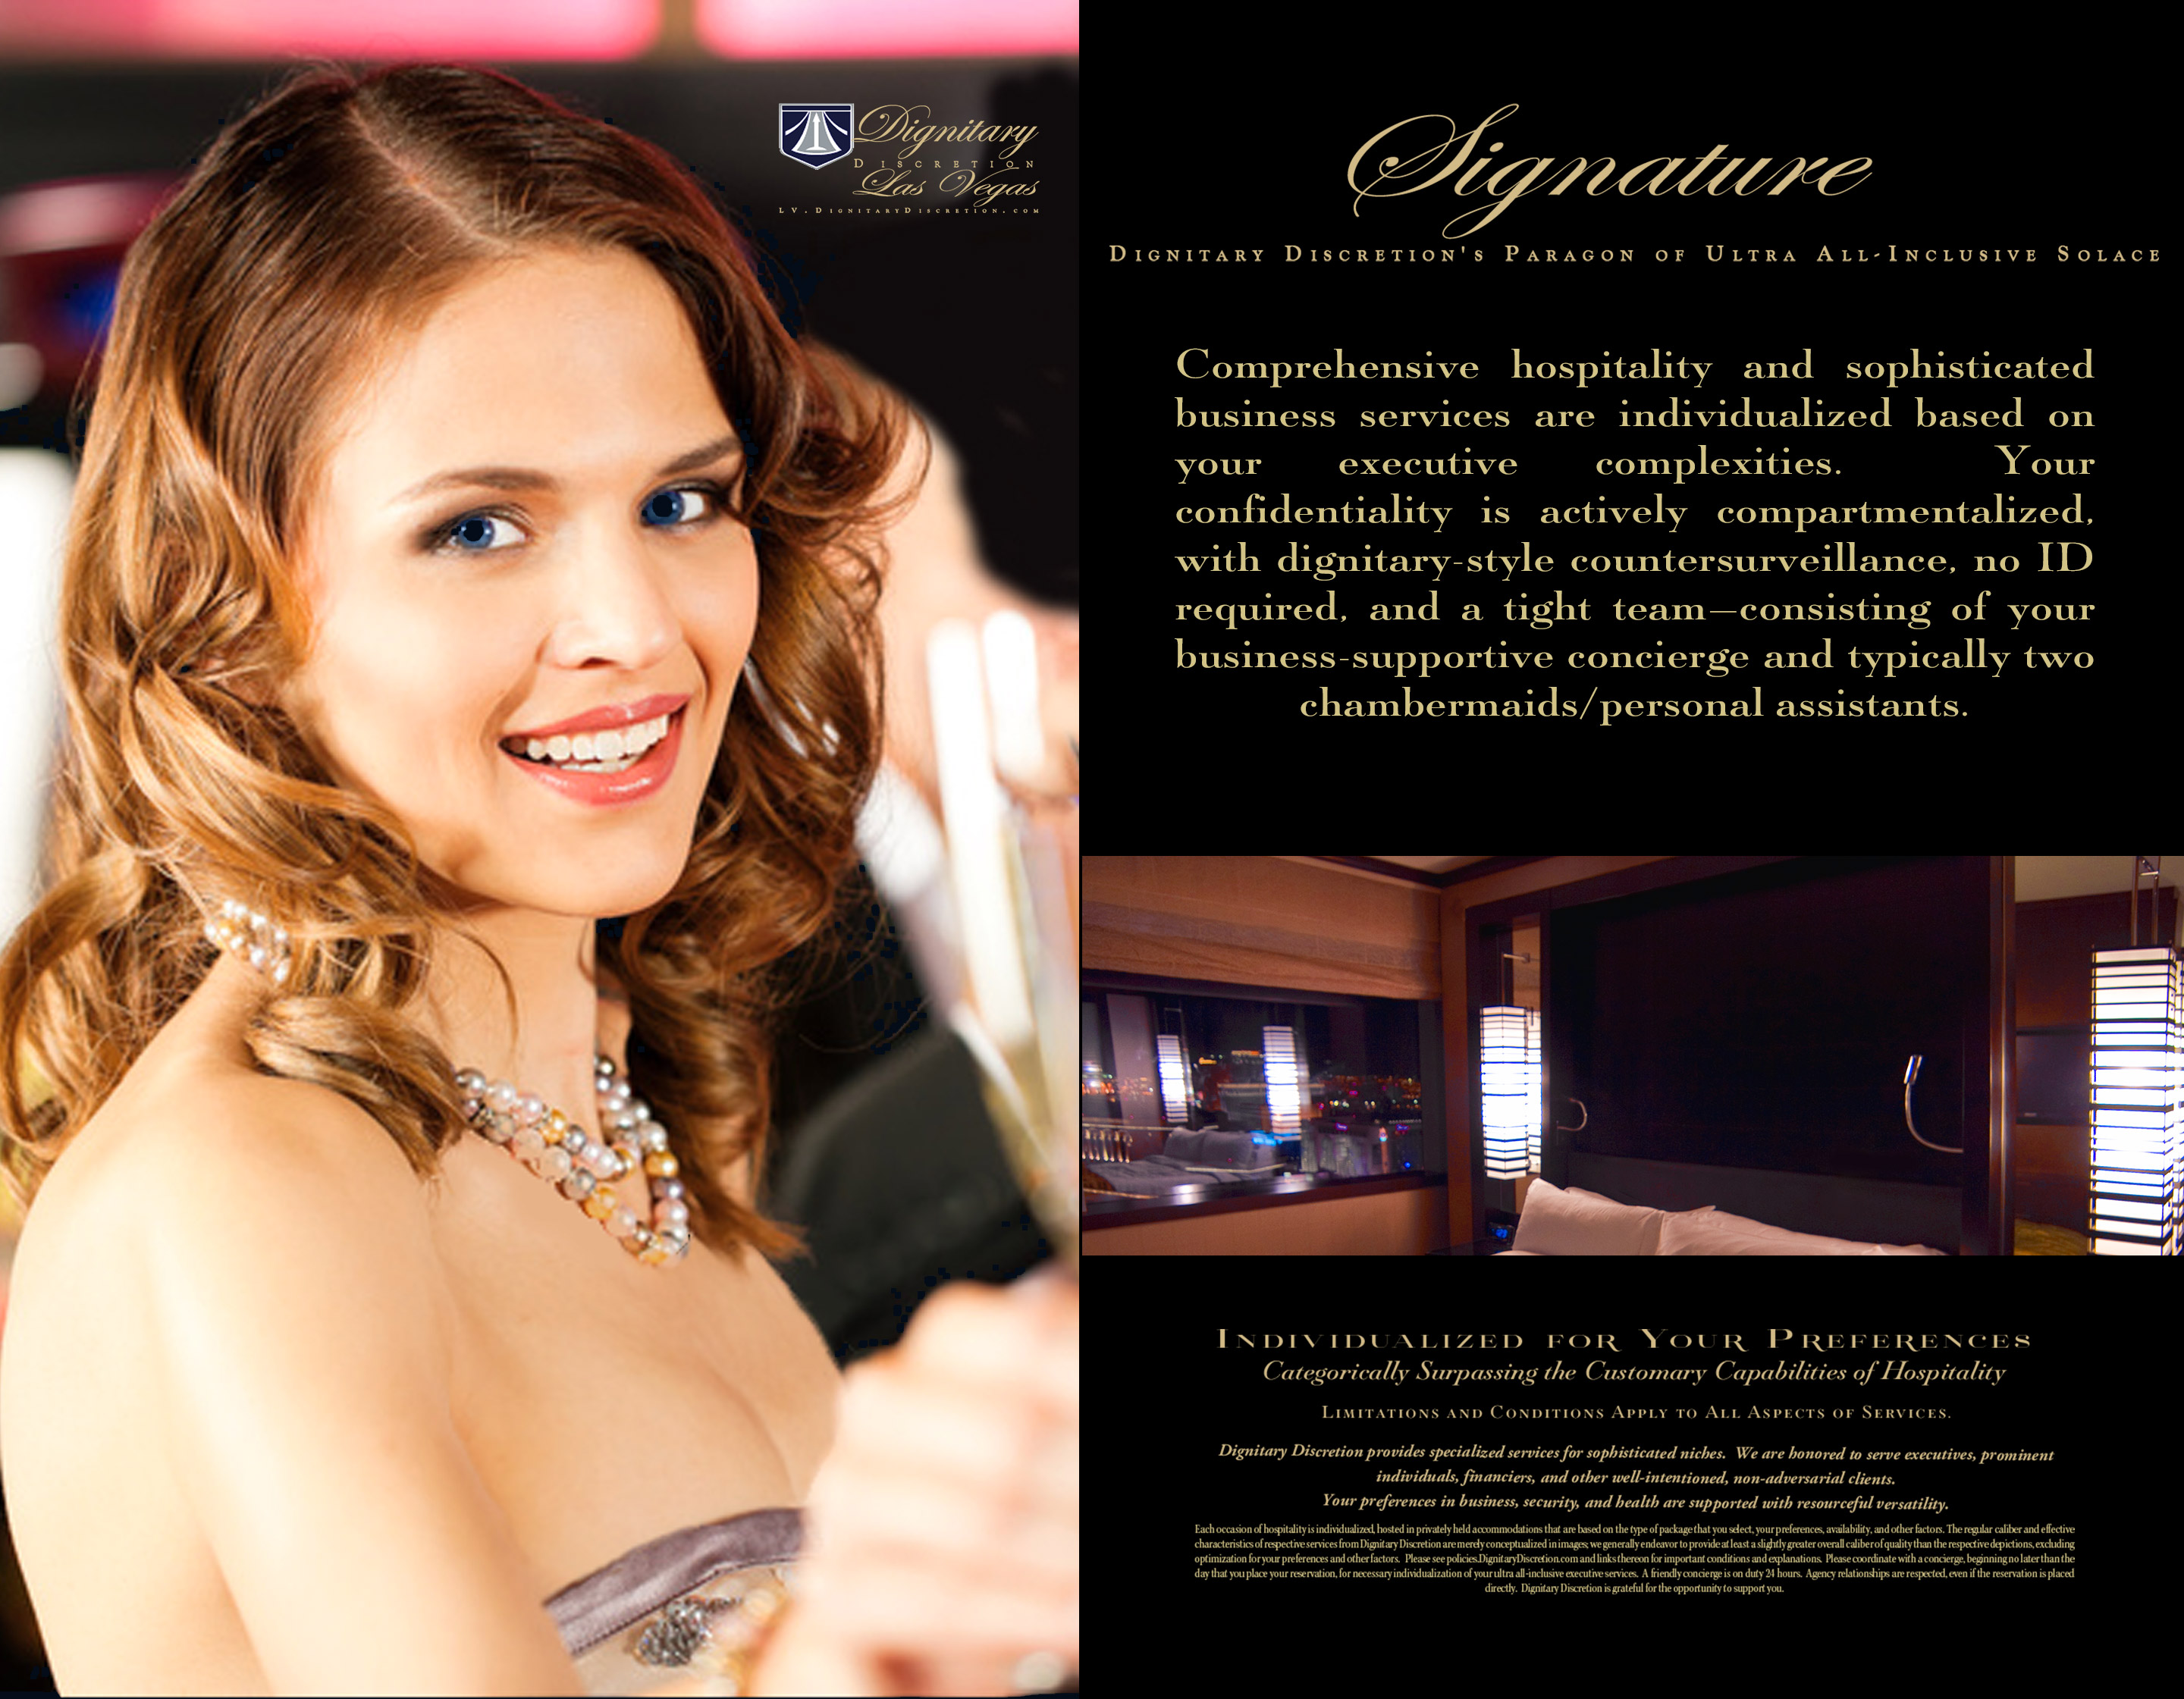 Signature Package, Dignitary Discretion Las Vegas